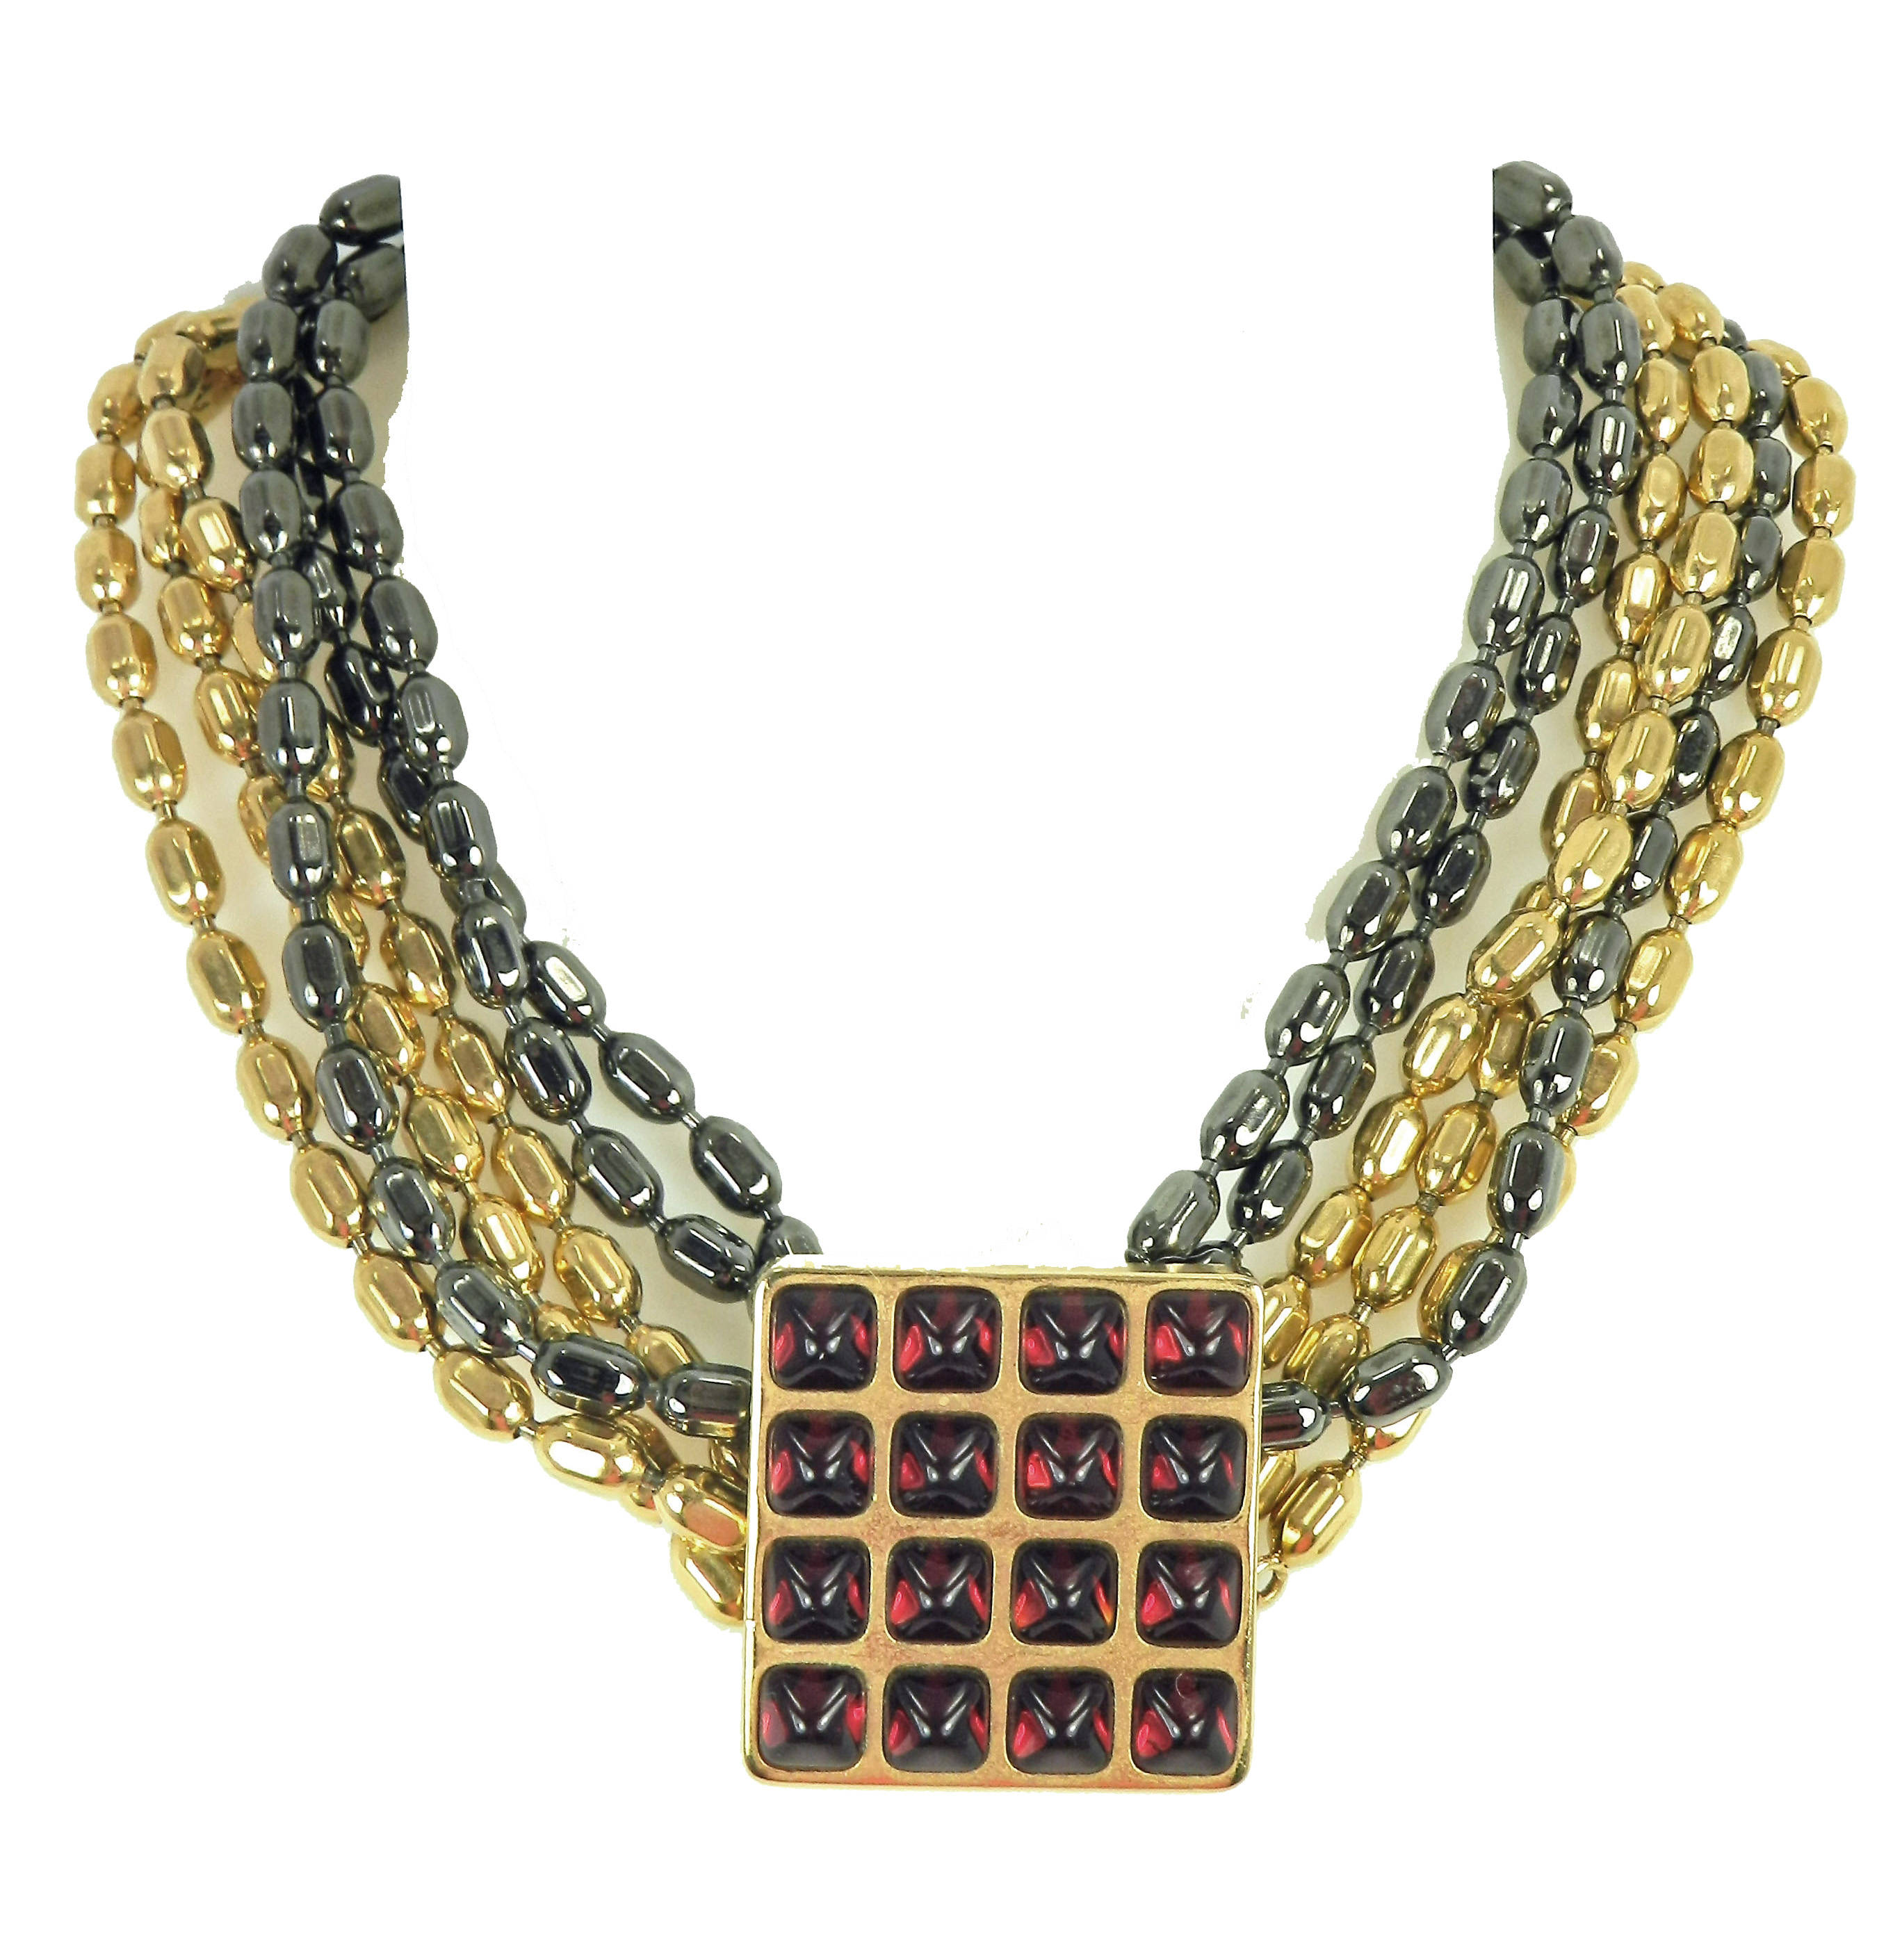 A Marriage ceremony Is Incomplete With out Jewellery Units